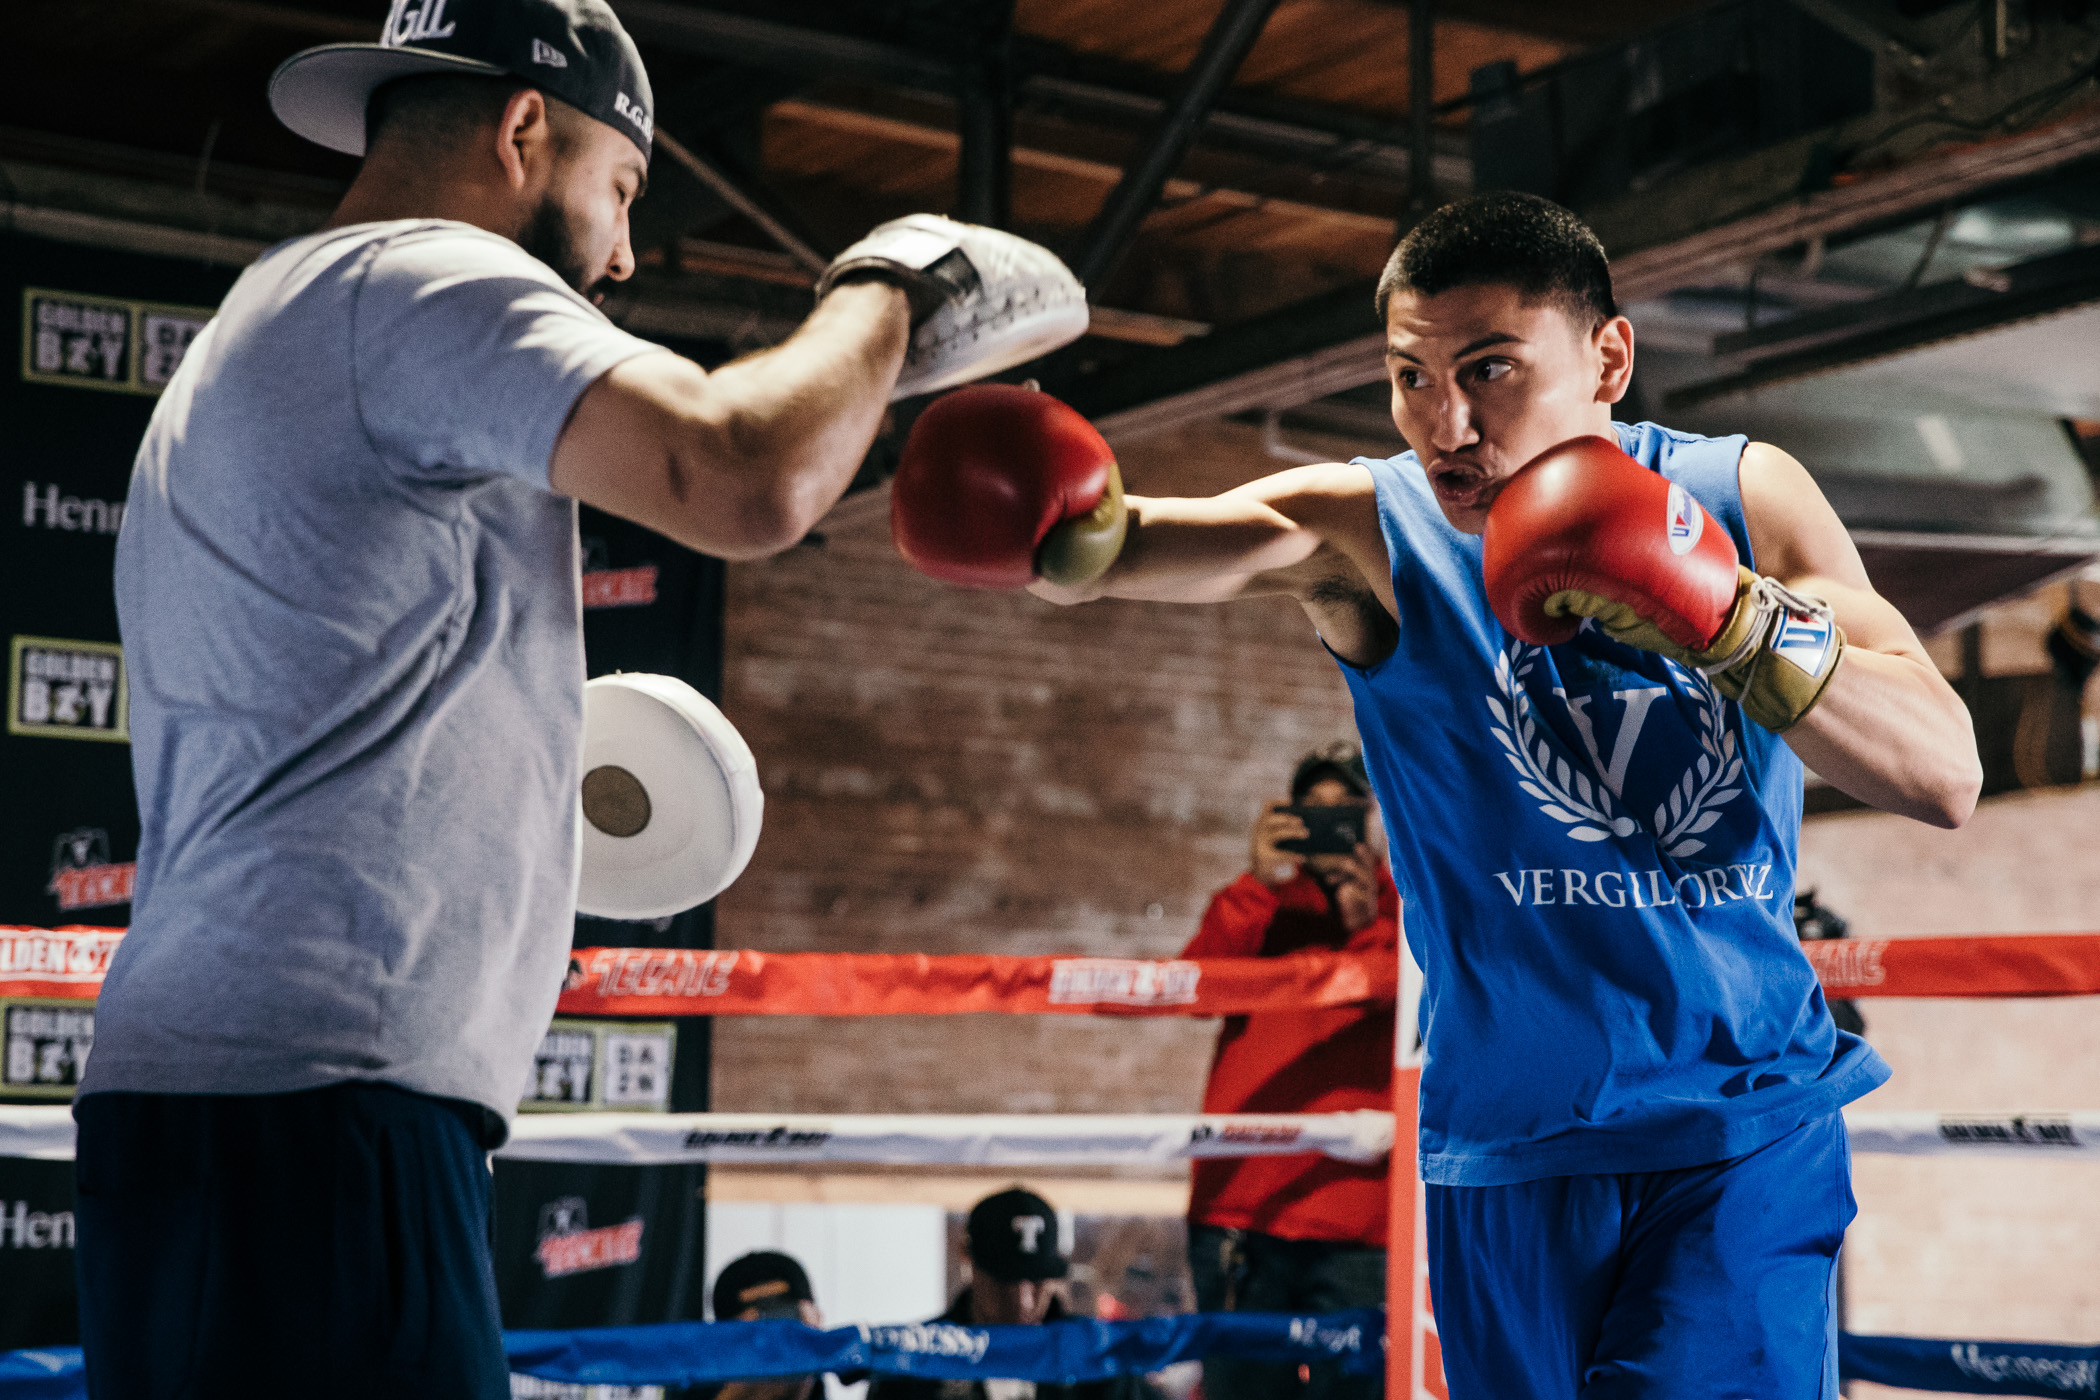 houston workout 0008 - Media Work Out: Jaime Munguia fights Takeshi Inoue Sat, Vergil Ortiz